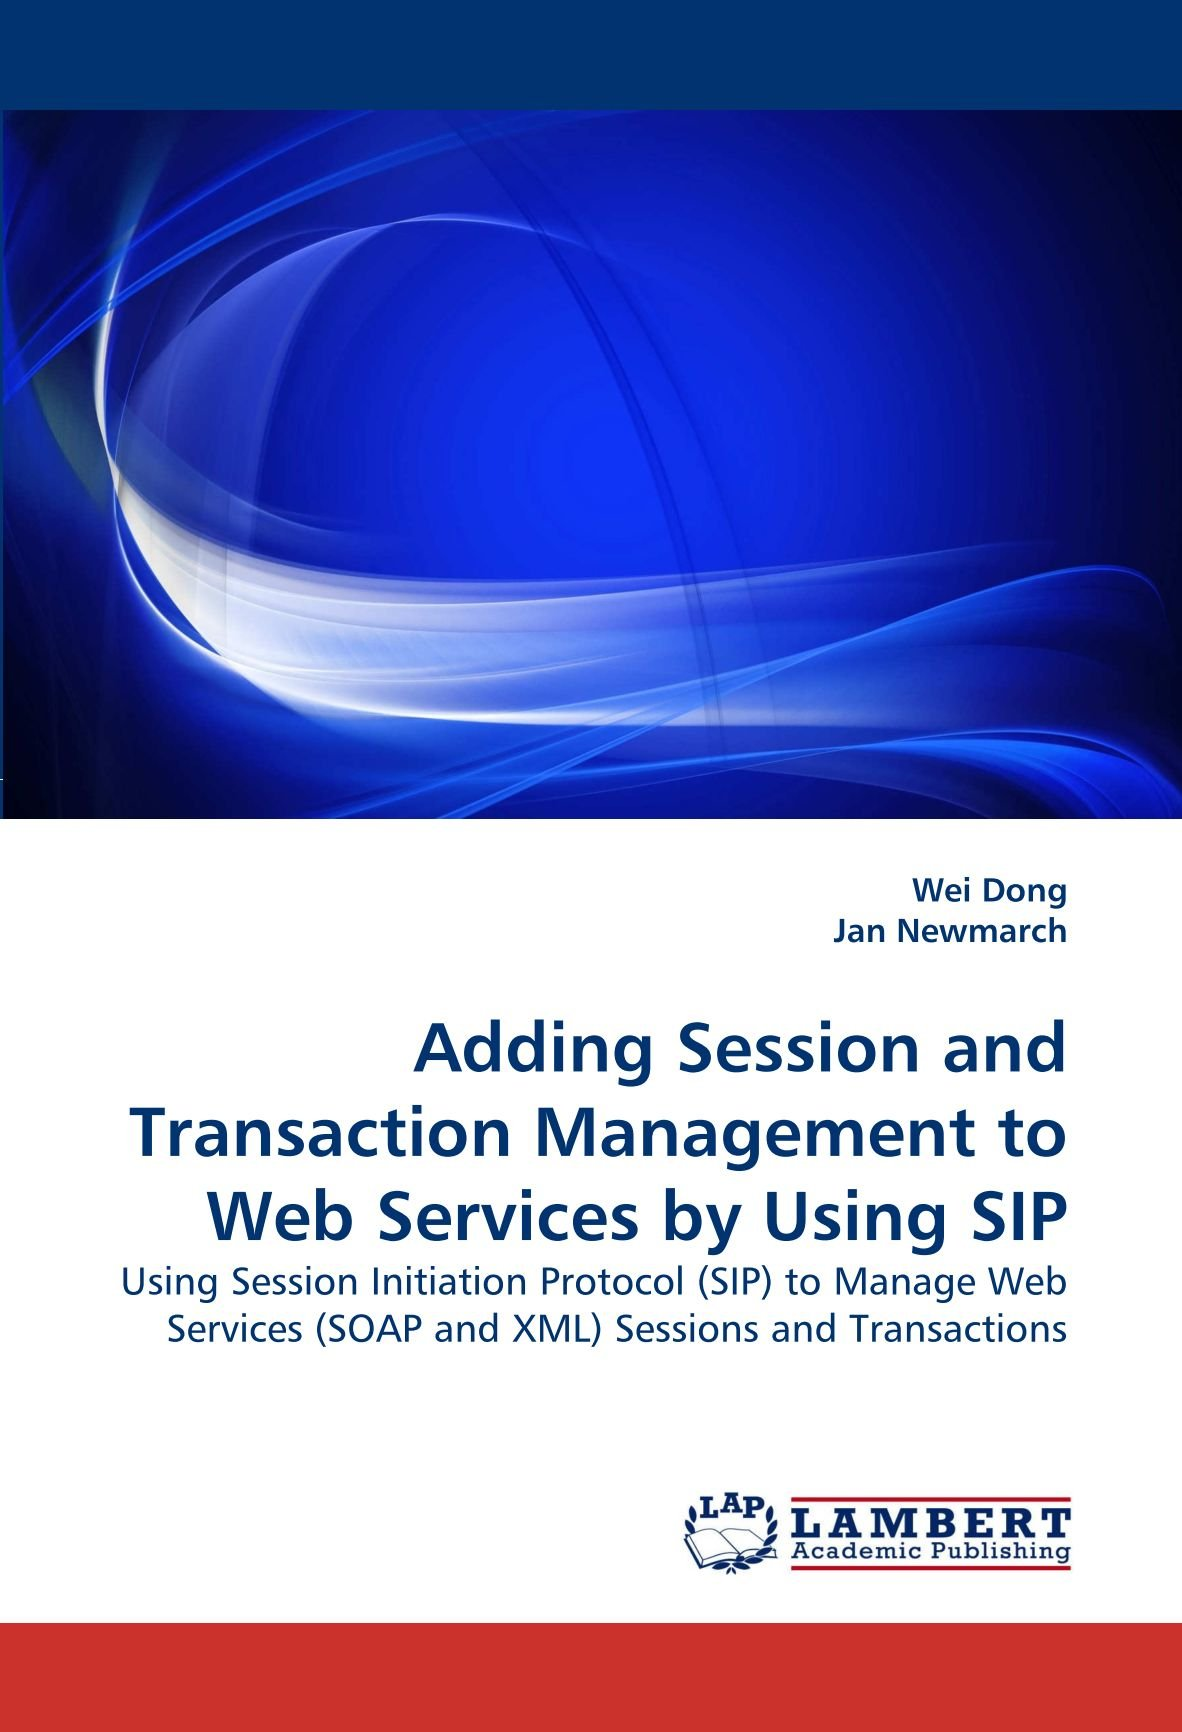 Download Adding Session and Transaction Management to Web Services by Using SIP: Using Session Initiation Protocol (SIP) to Manage Web Services (SOAP and XML) Sessions and Transactions pdf